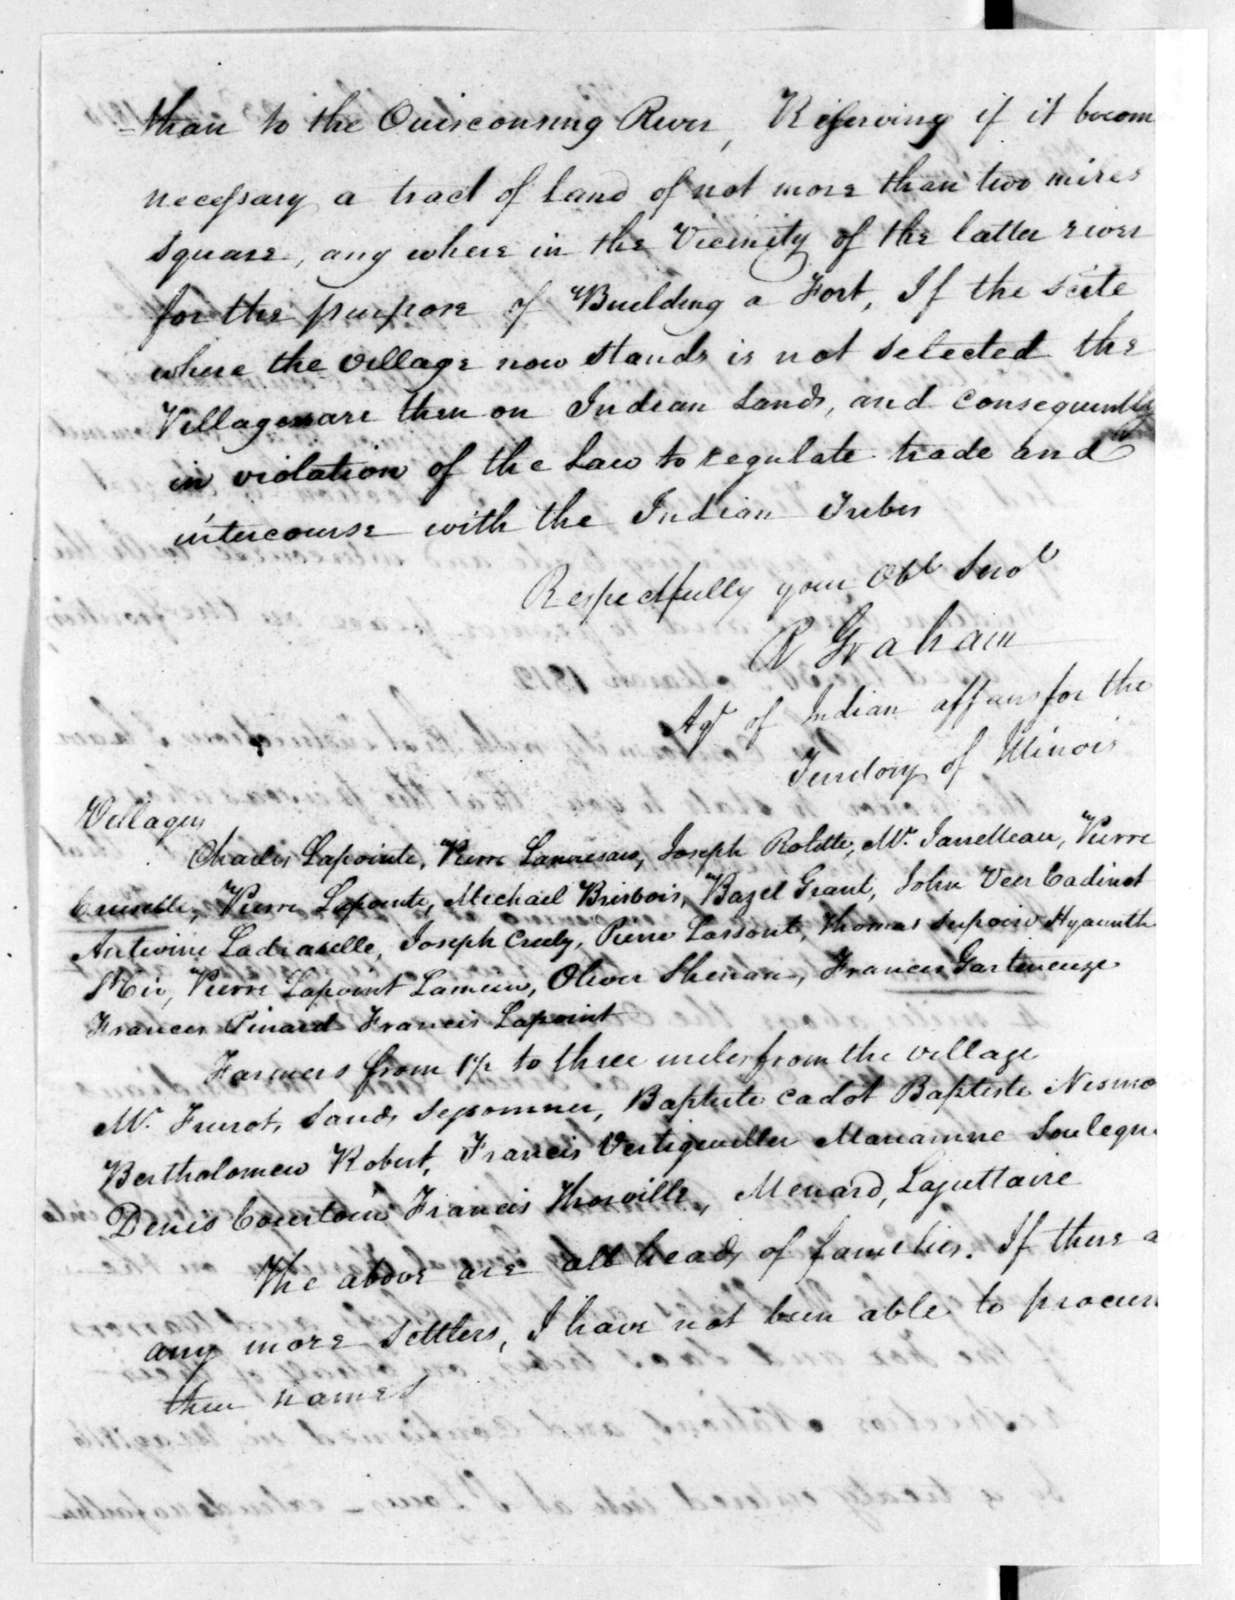 Richard Graham to A. Smith, June 23, 1816